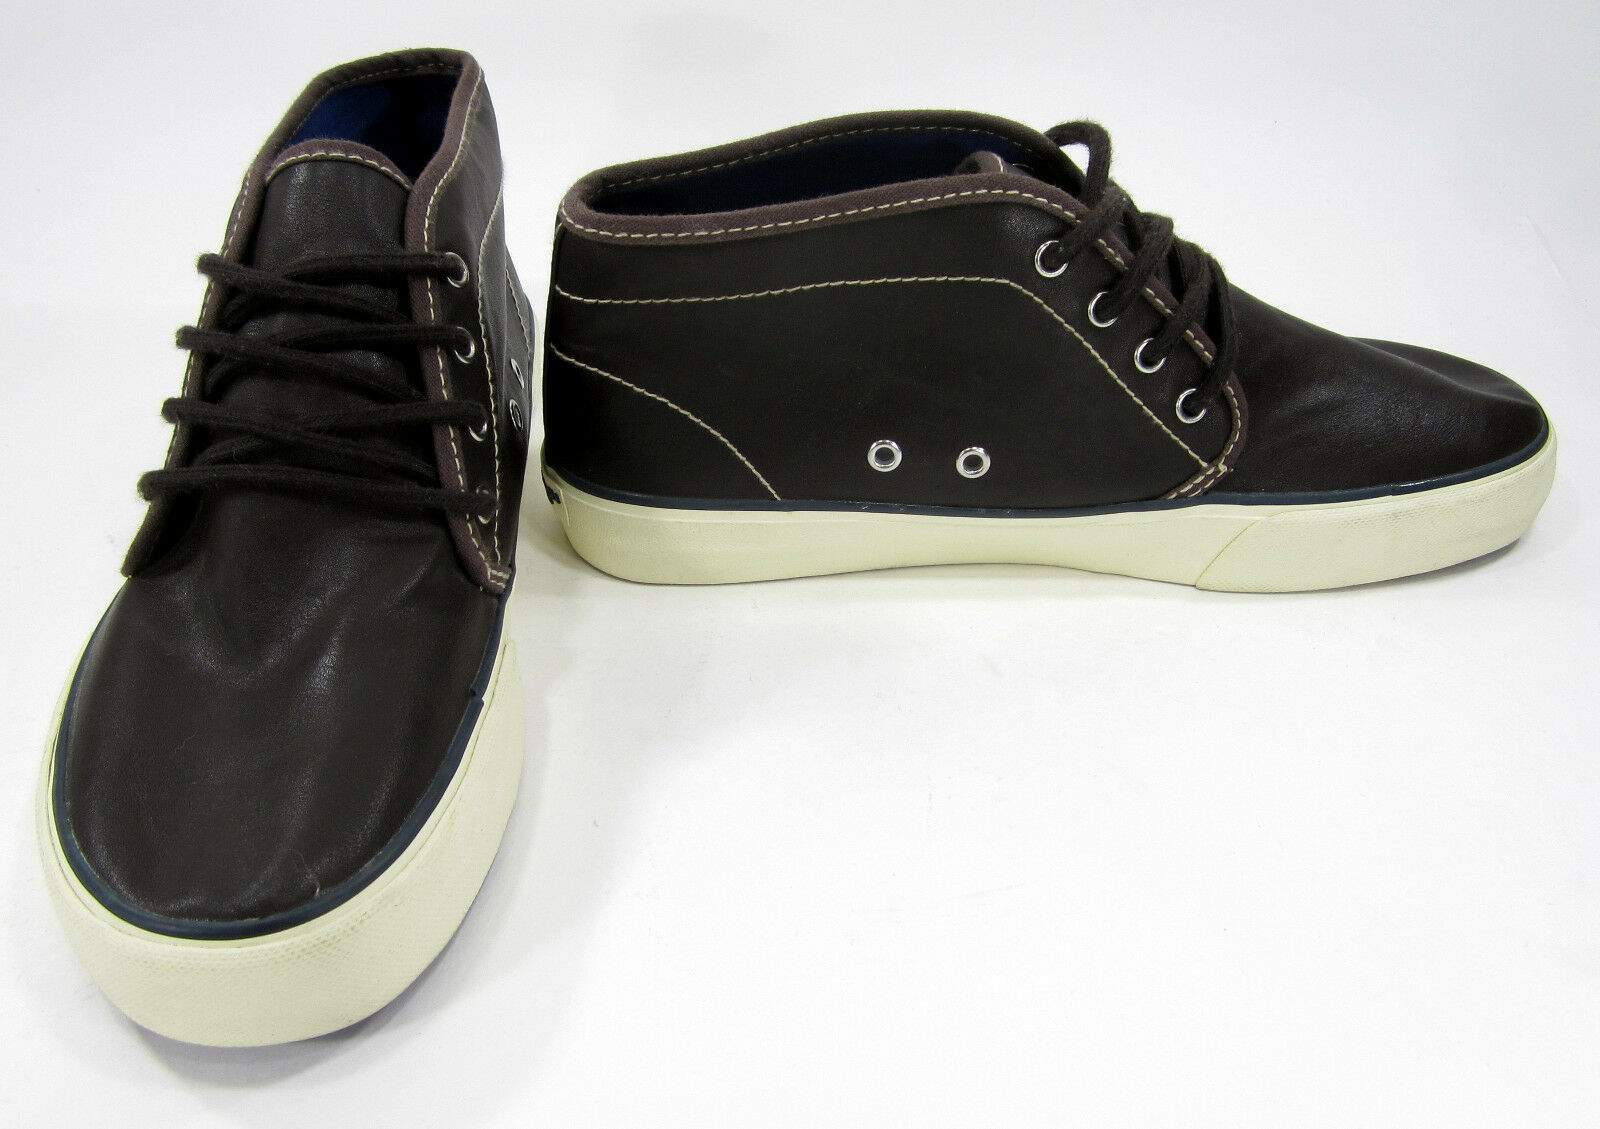 American Eagle Outfitters Chaussures Chukka Marron Chocolat paniers Taille 11